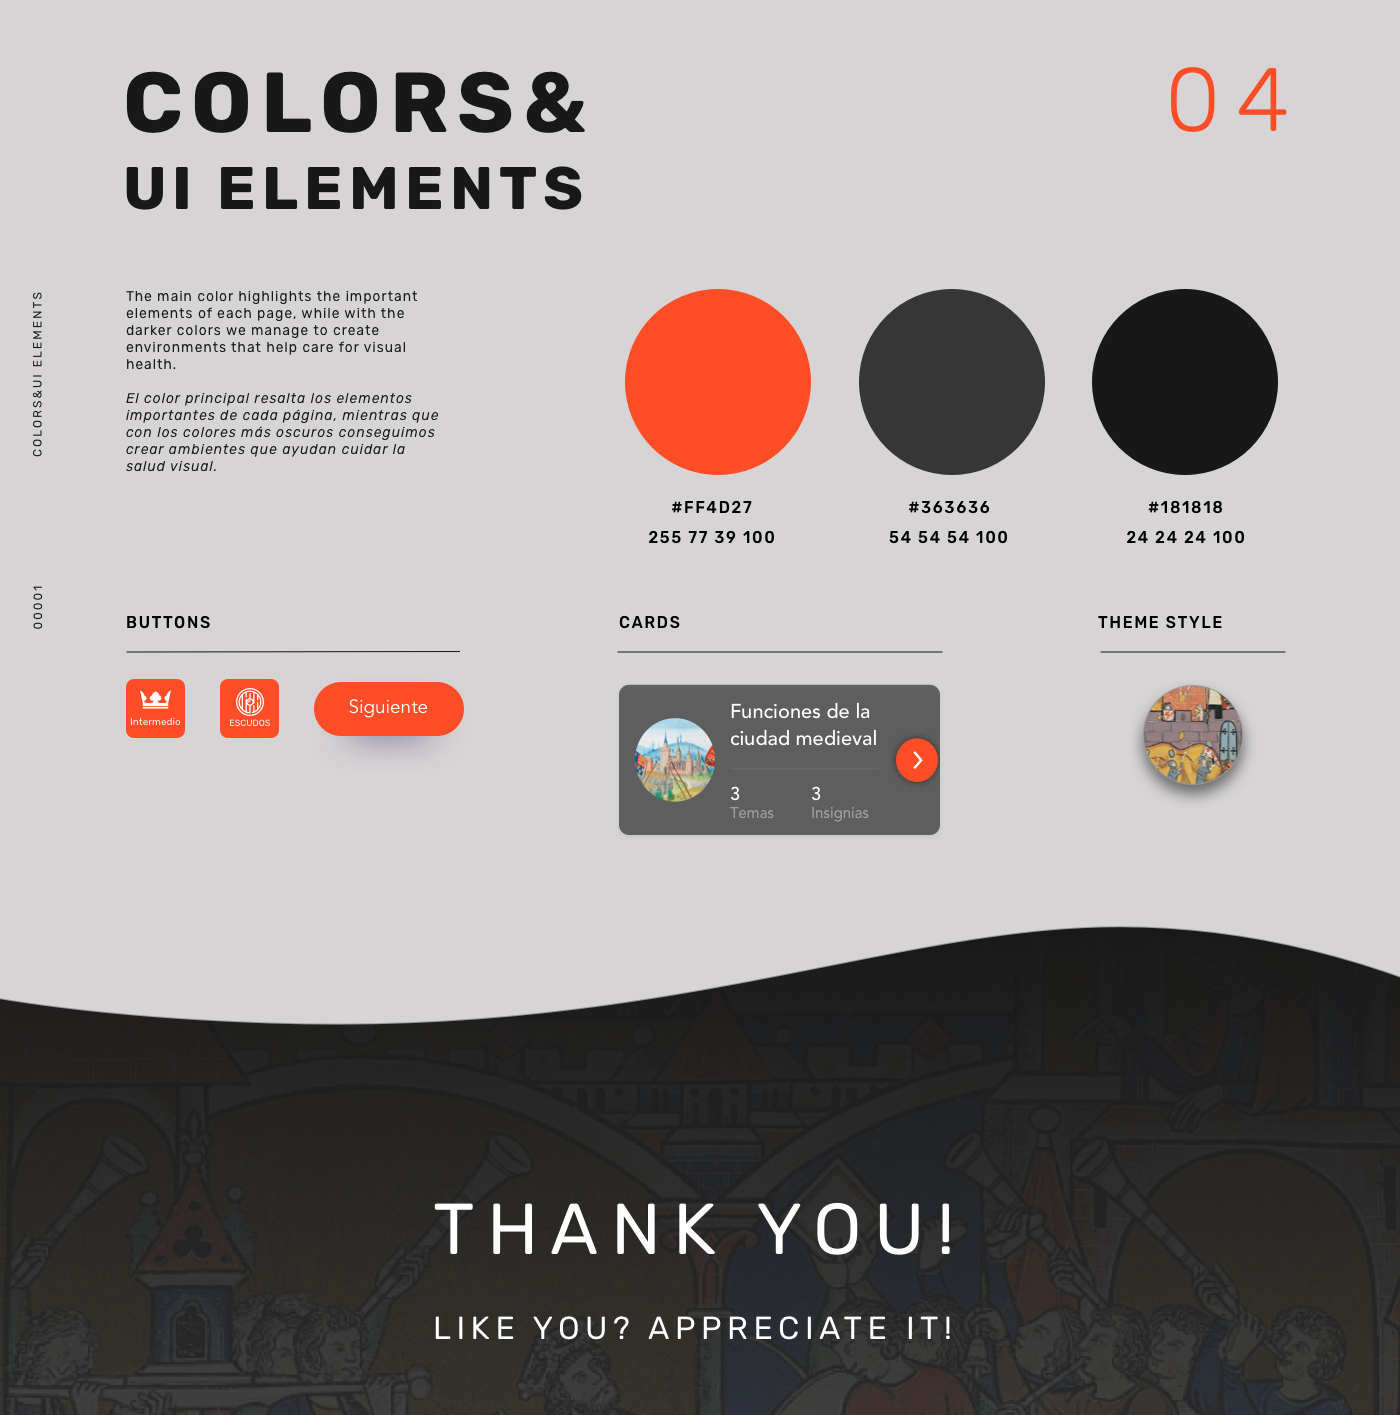 These are the colors and elements of the user interface that we have created.